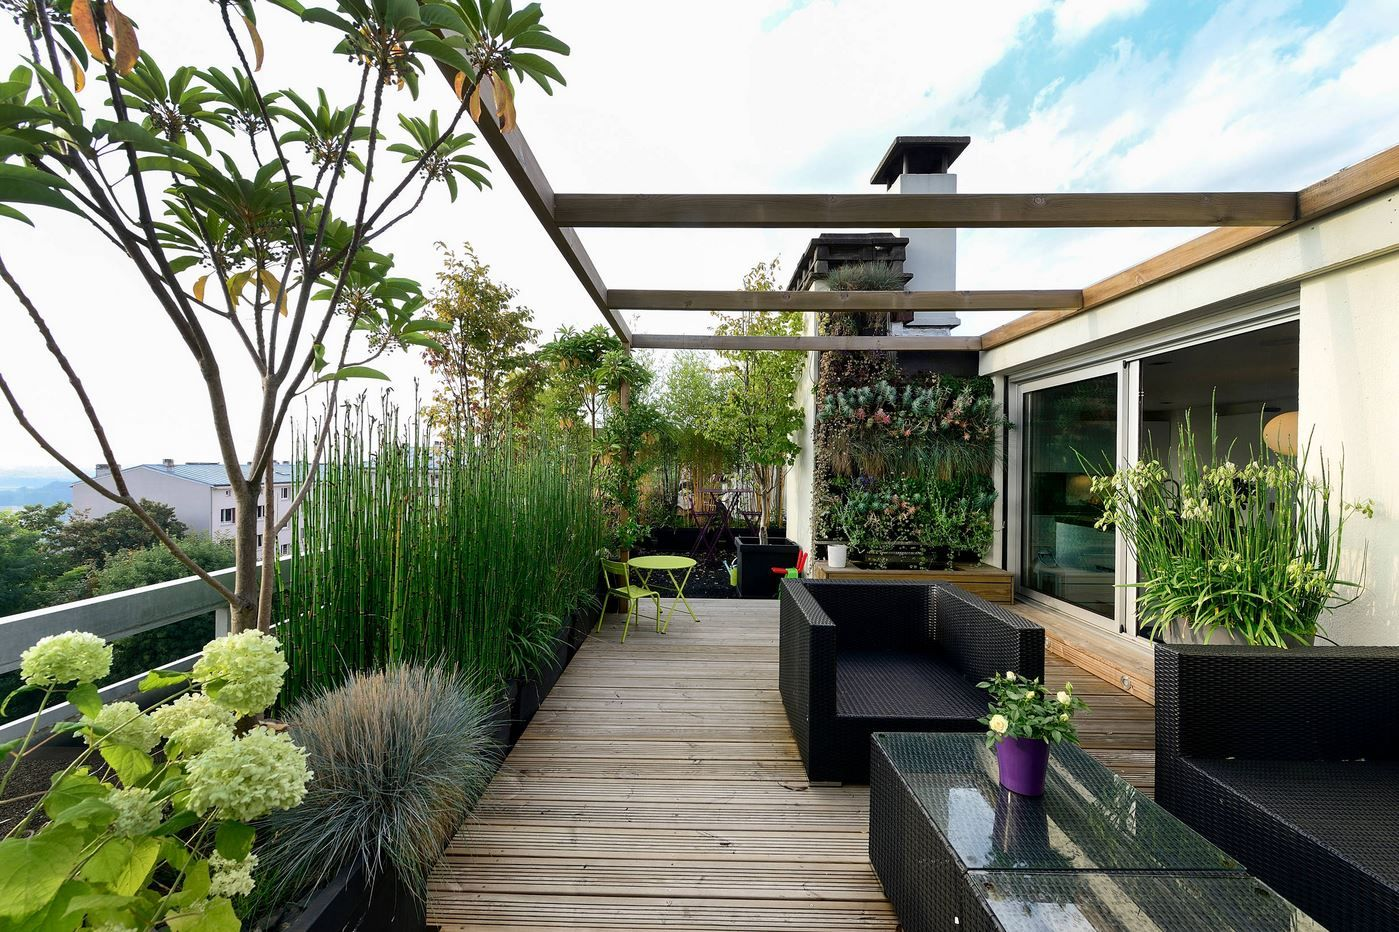 Pin By Sarah Bayati On Rooftop Roof Garden Design Rooftop Terrace Design Rooftop Design